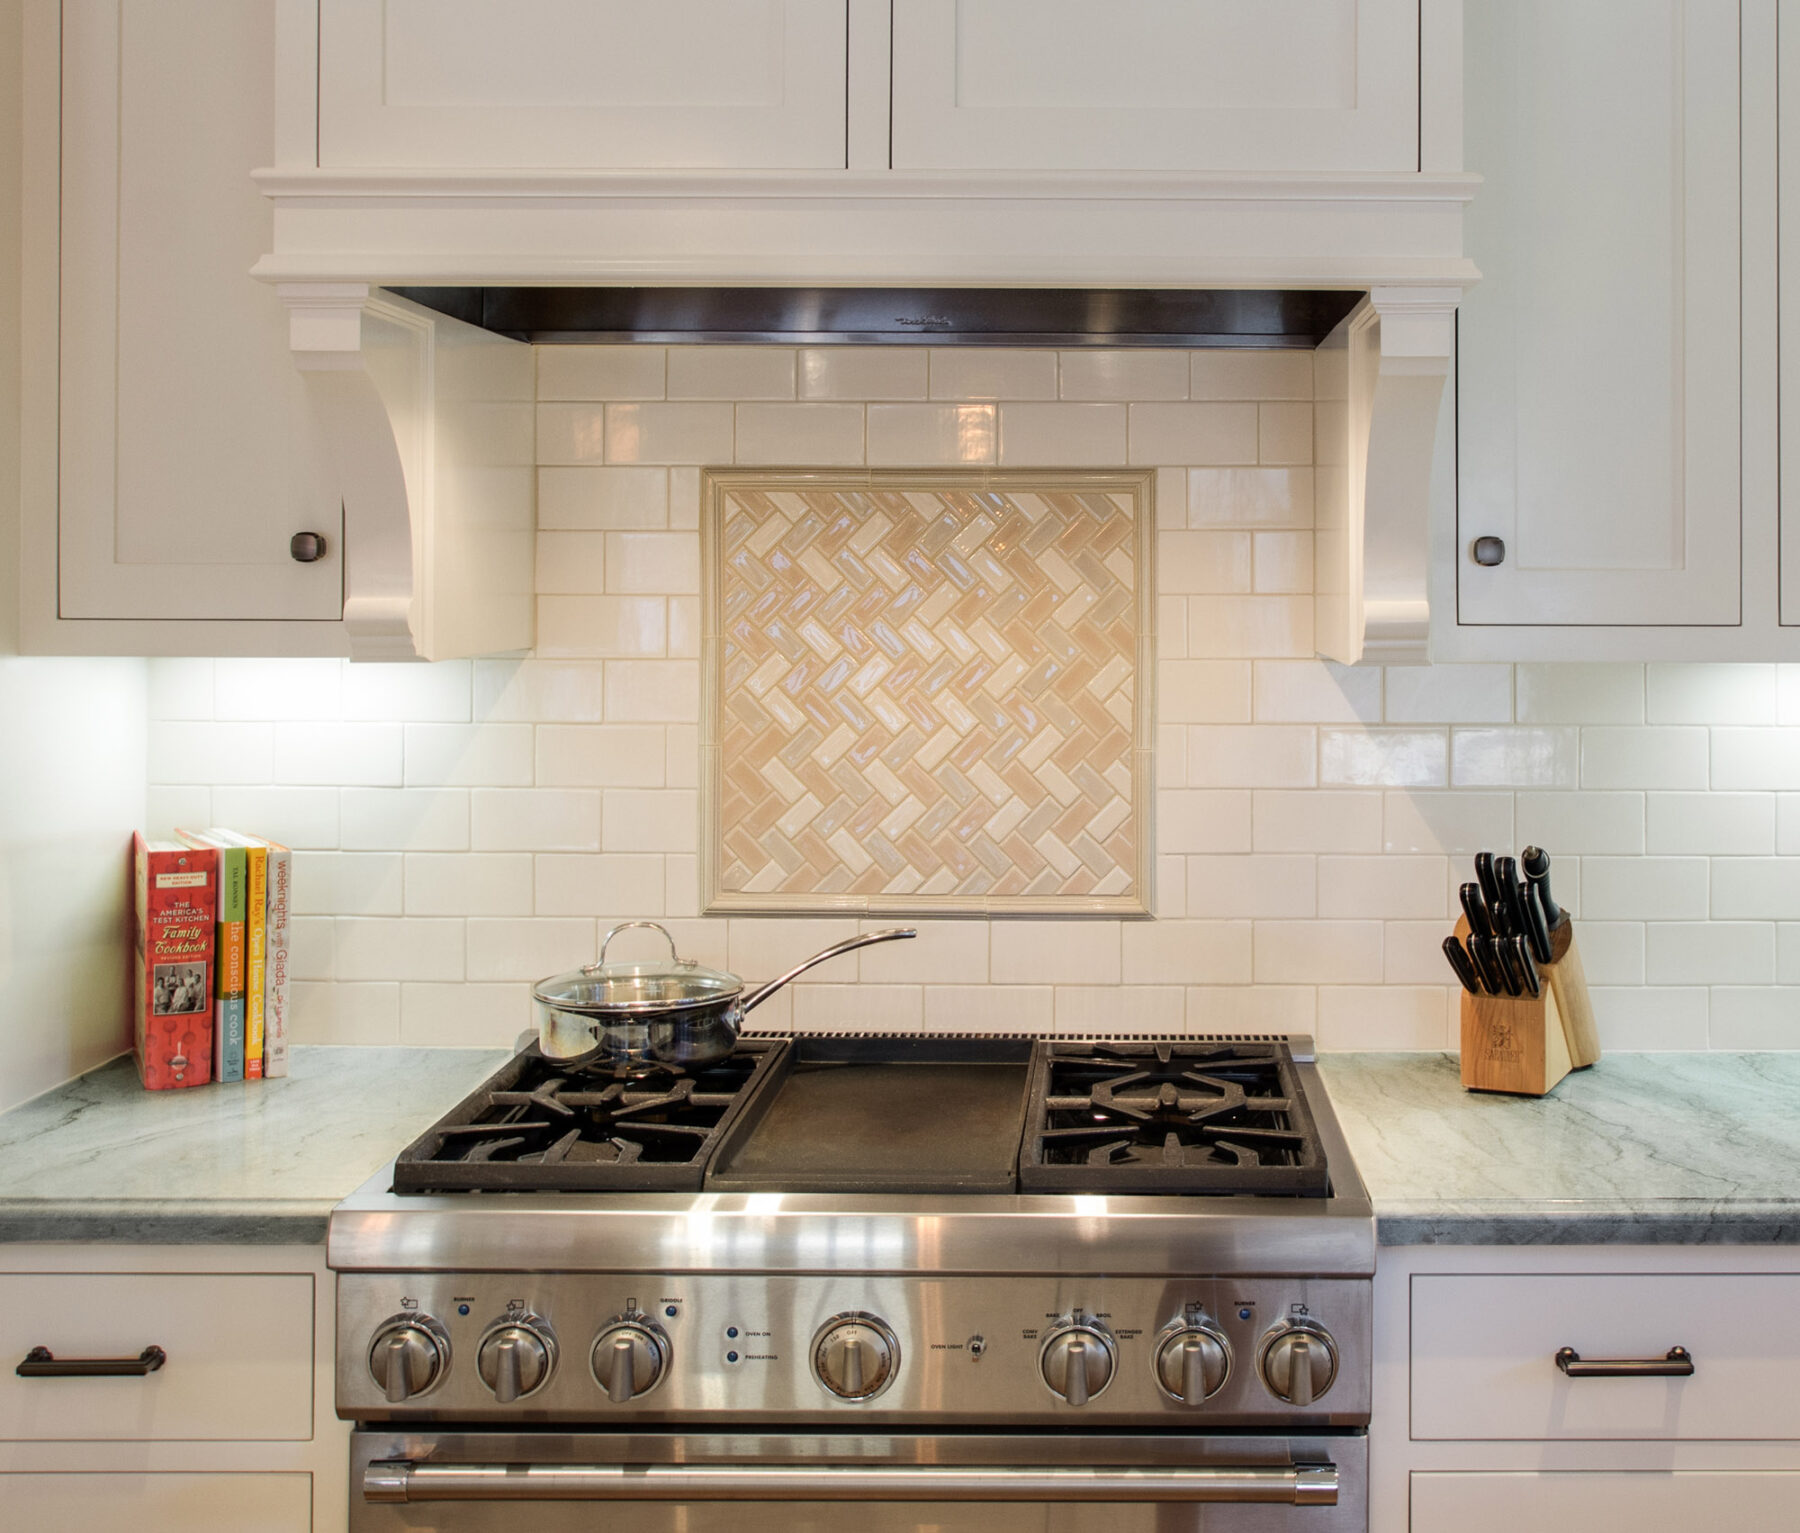 Custom tile backsplash and custom wood hood surround with corbels nott associates - Custom kitchen backsplash tiles ...